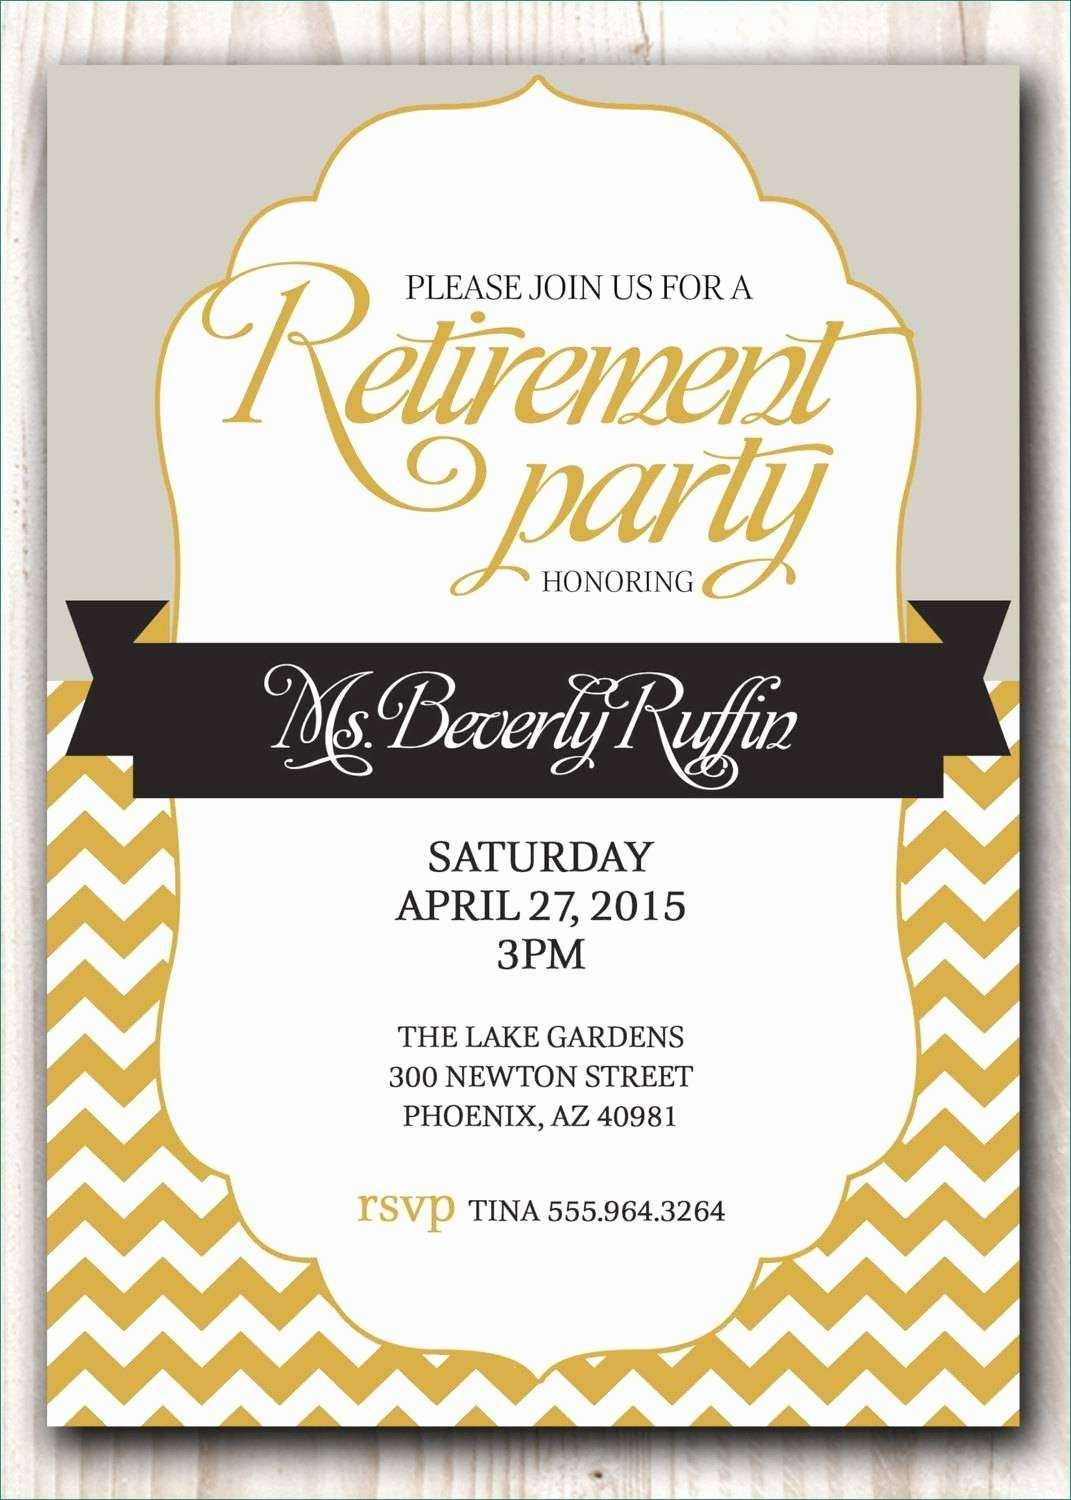 Astonishing Retirement Invitation Template Gallery - Kathycanfor - Free Printable Retirement Party Invitations